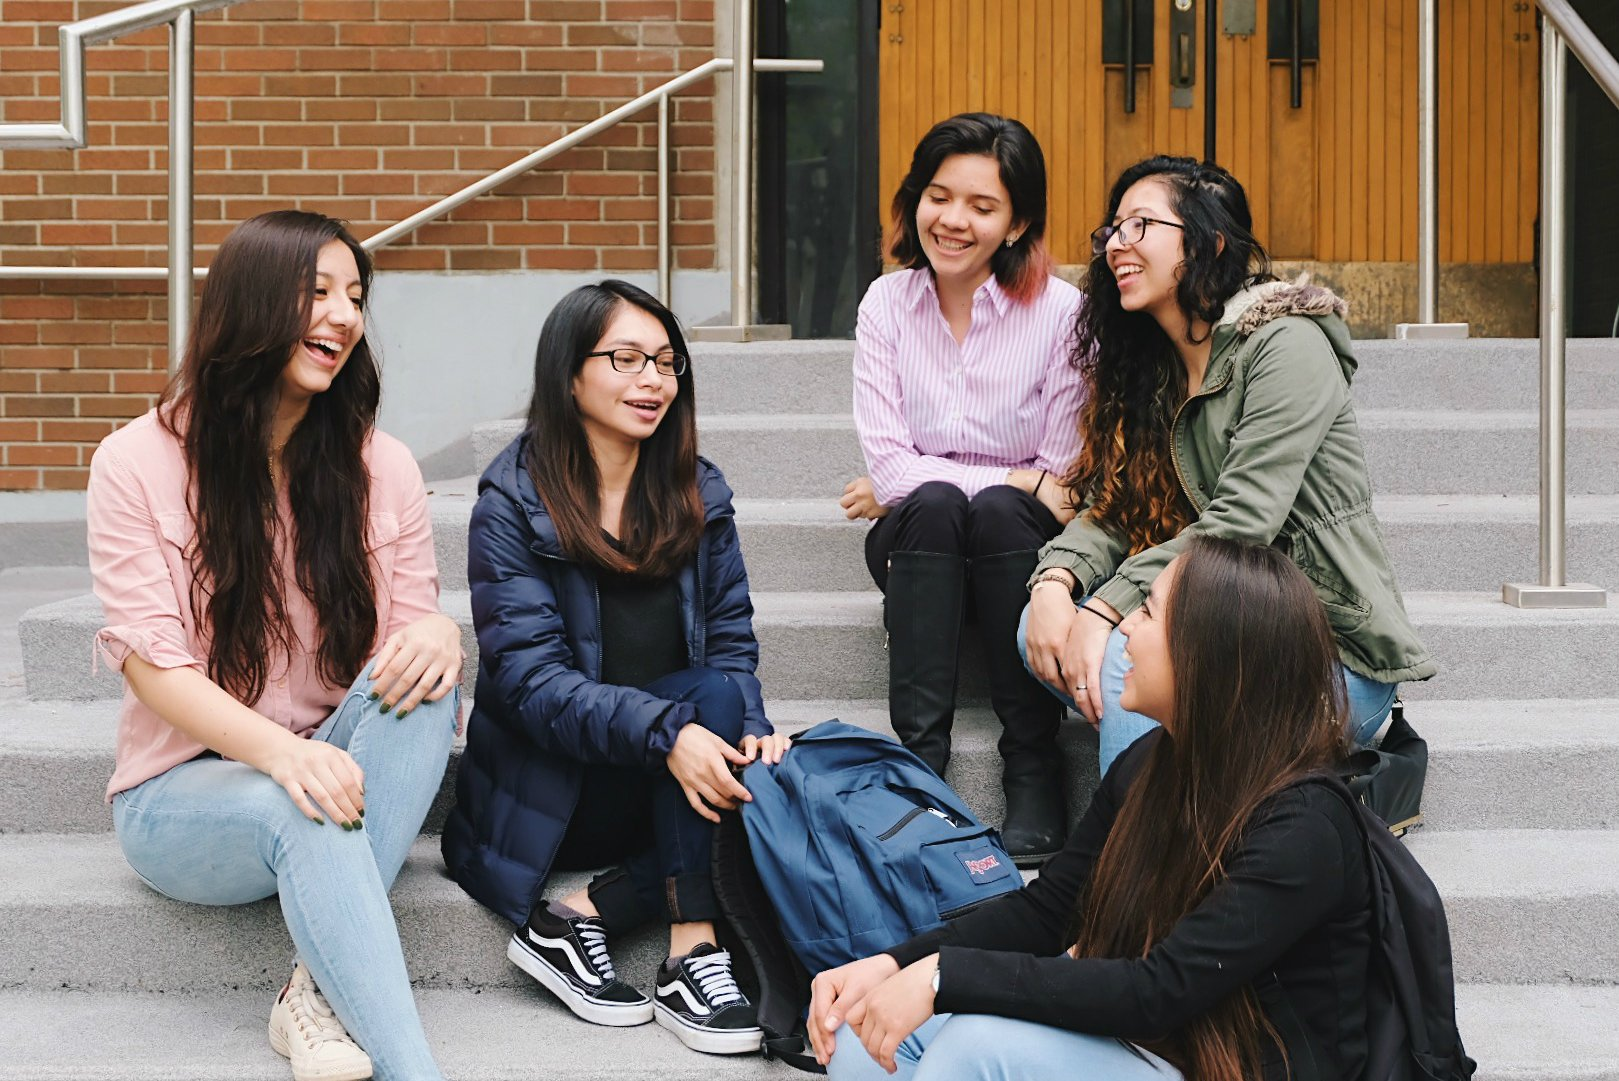 Group of female students sitting on the steps and talking to each other